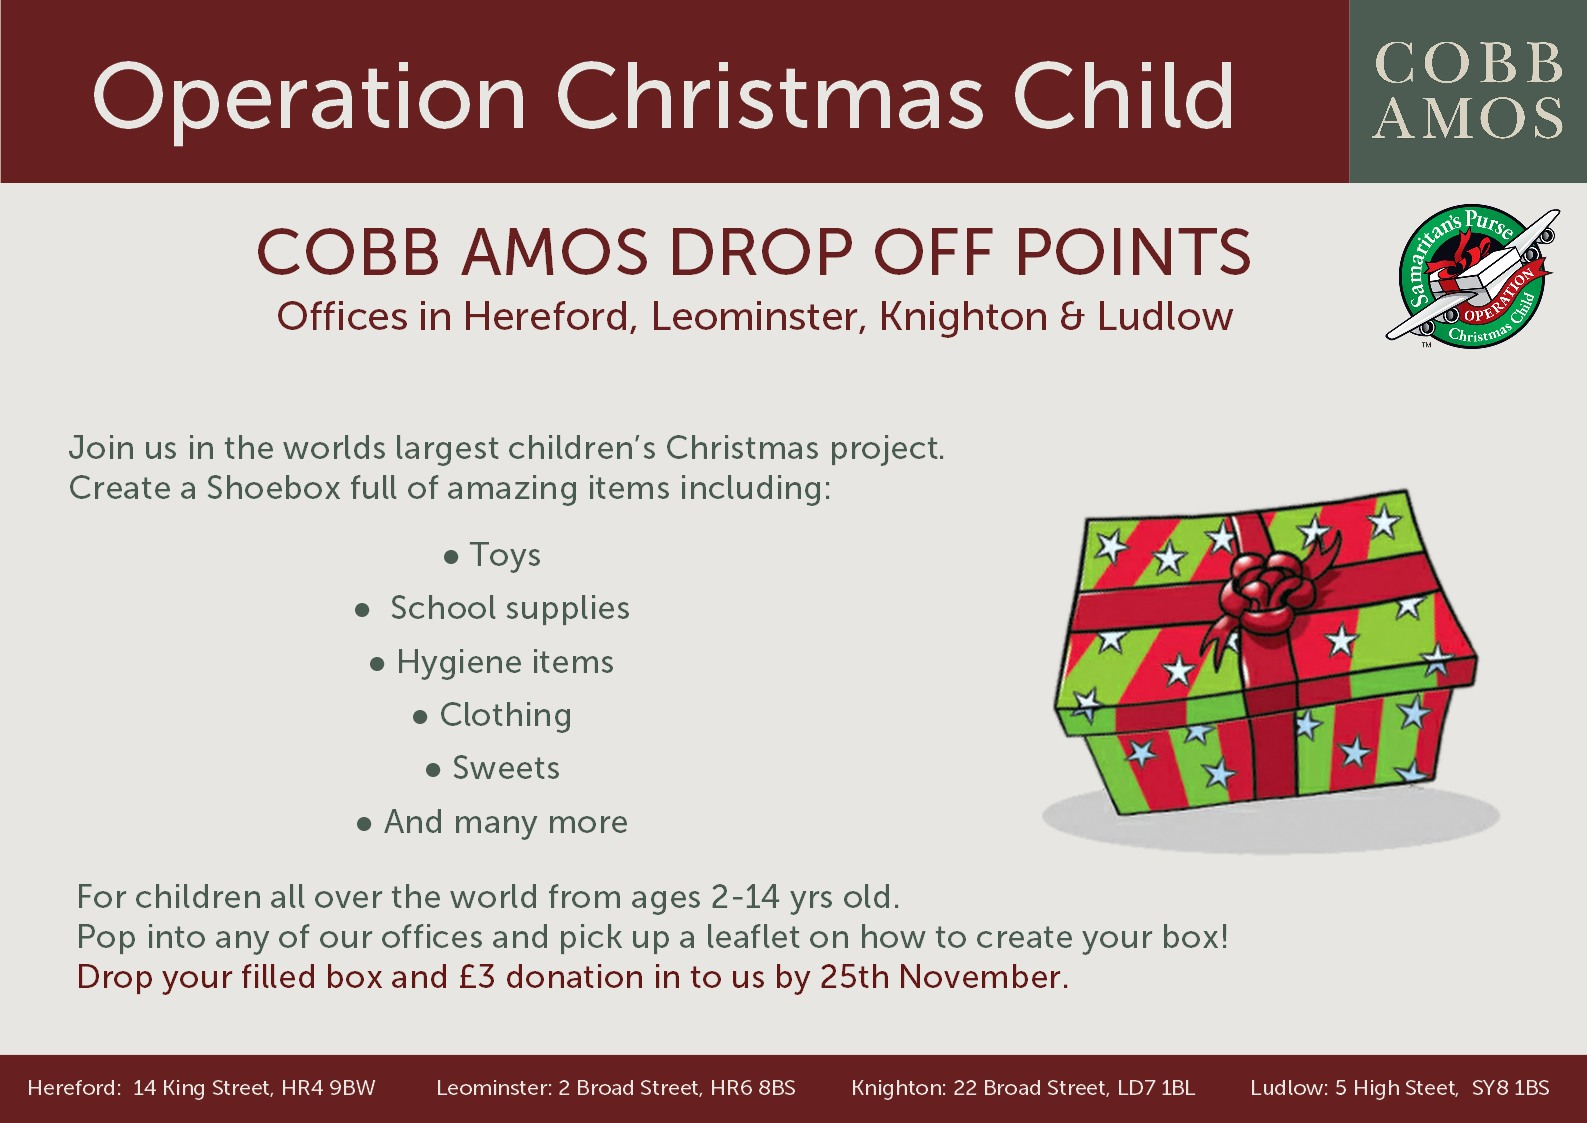 Operation Christmas Child - Cobb Amos Estate Agents